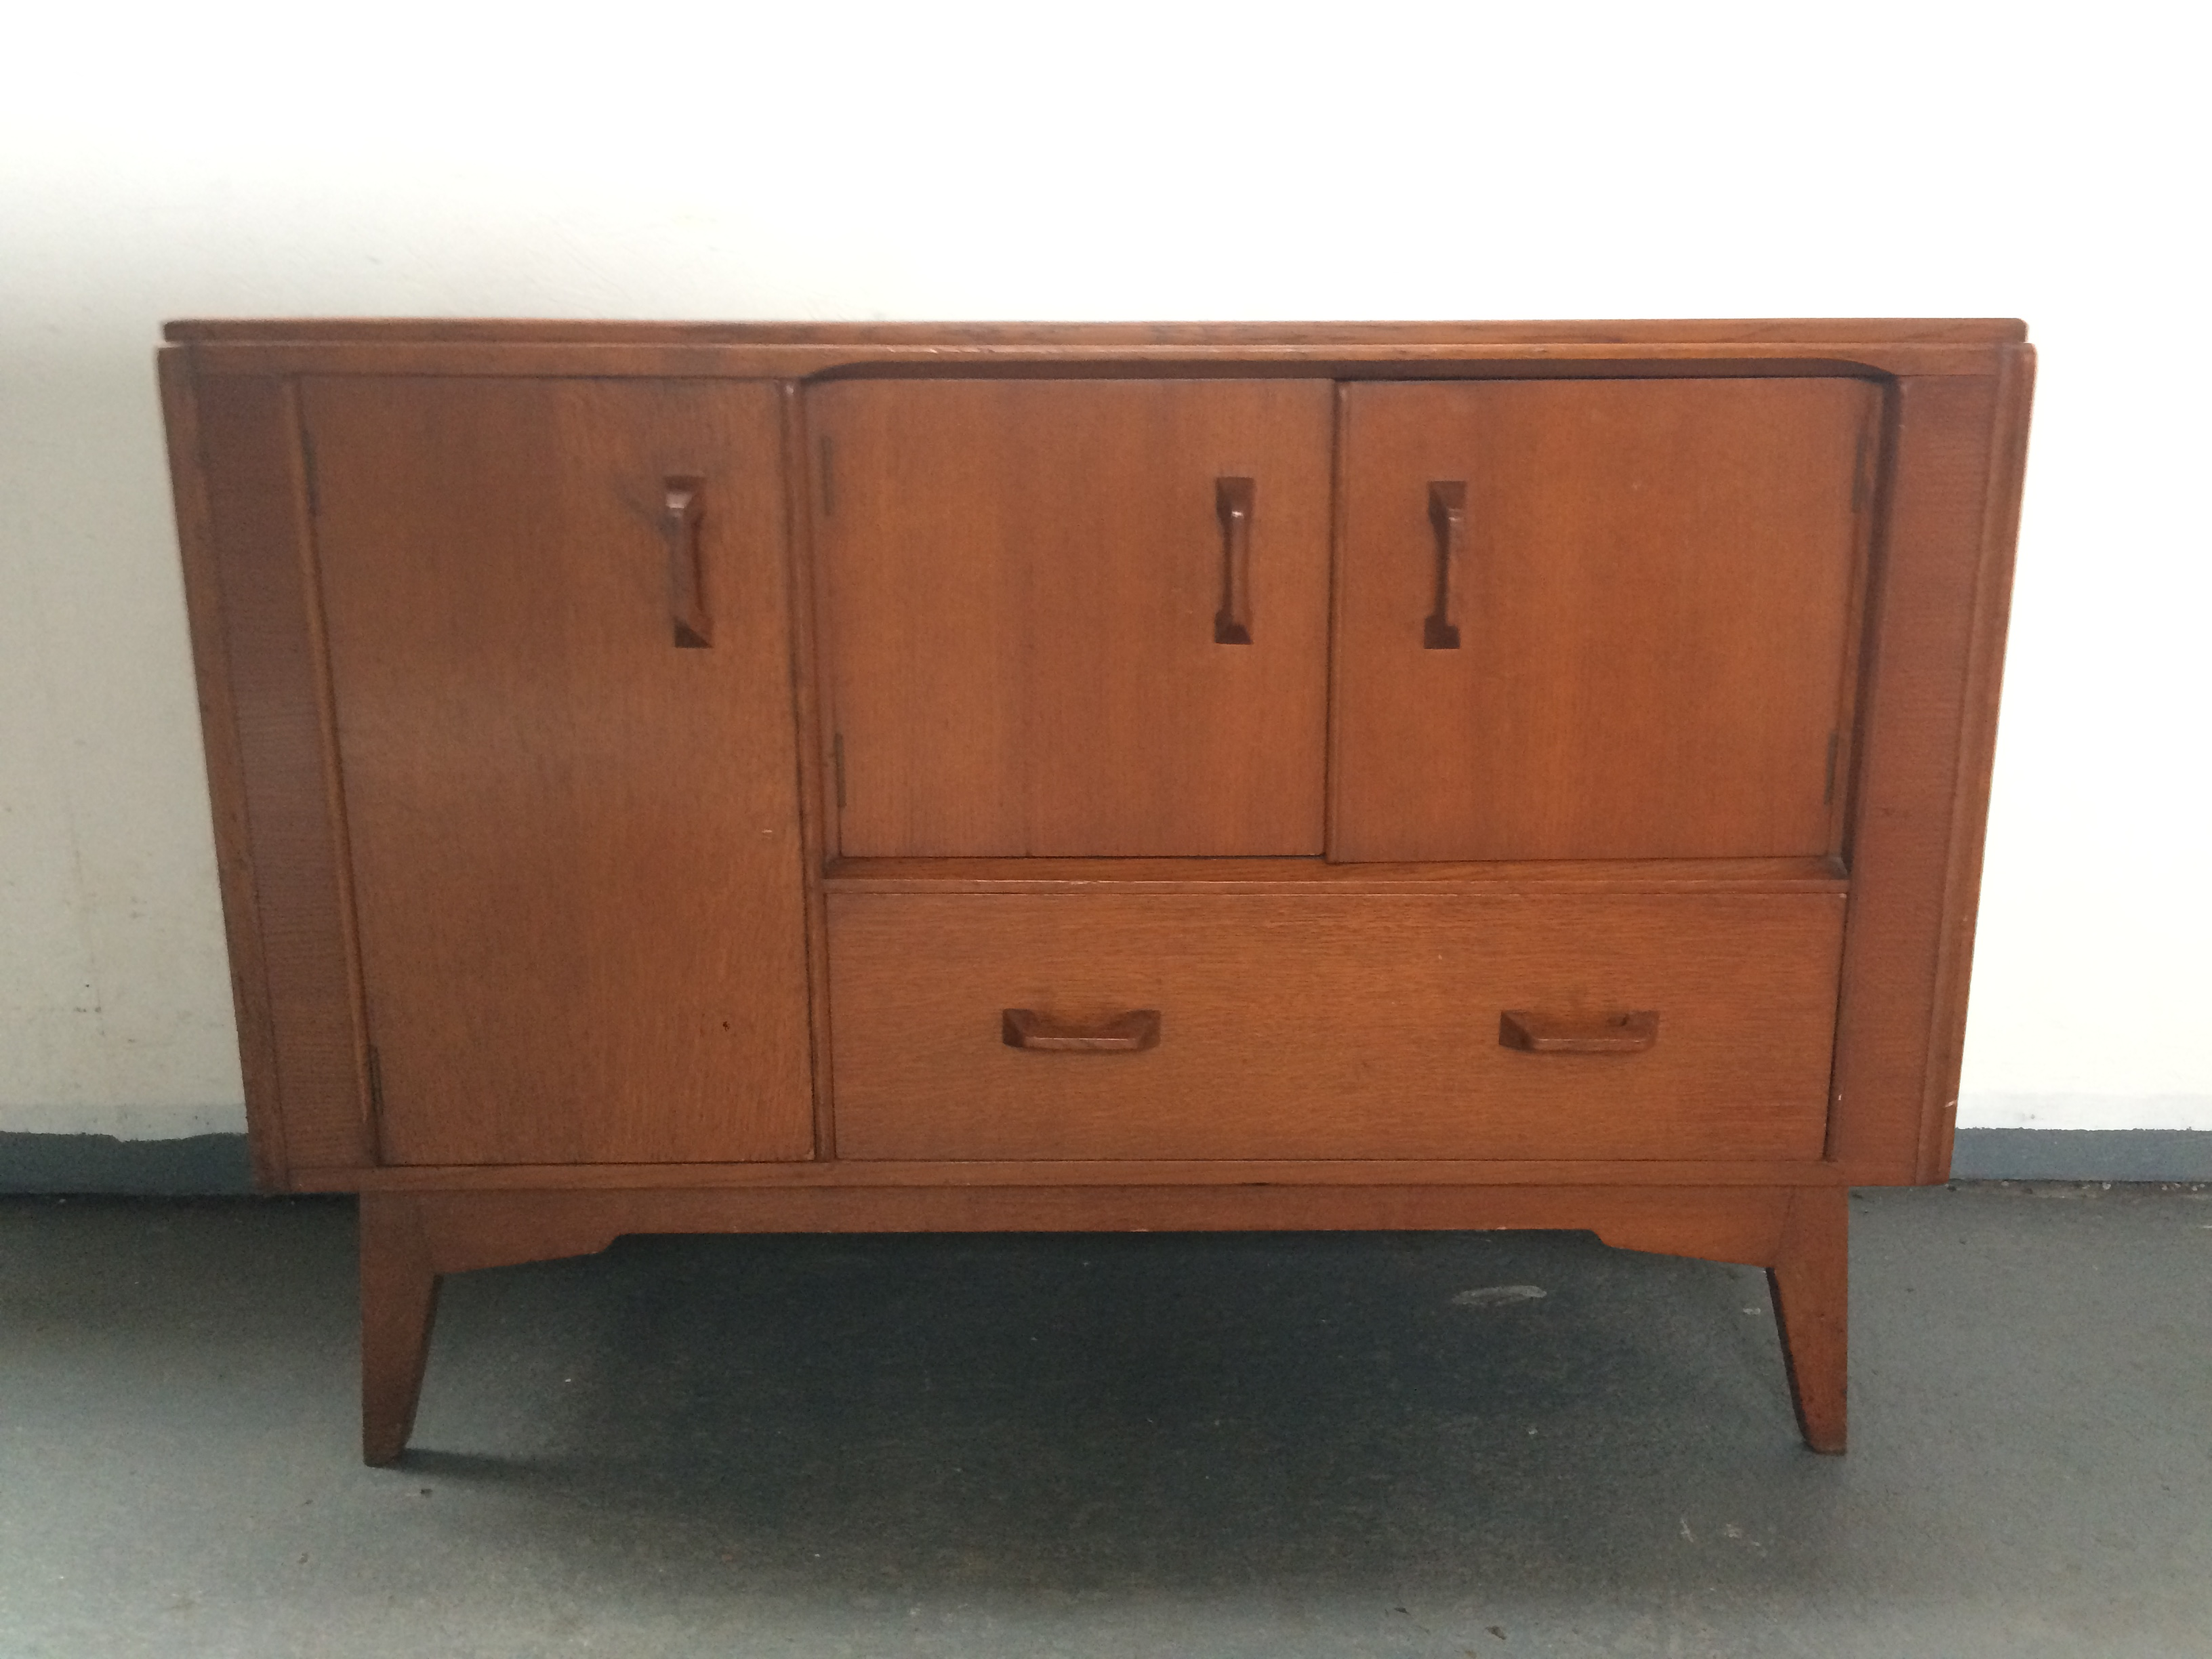 Stunning mid century authentic g plan brandon sideboard teak for Affordable furniture brandon